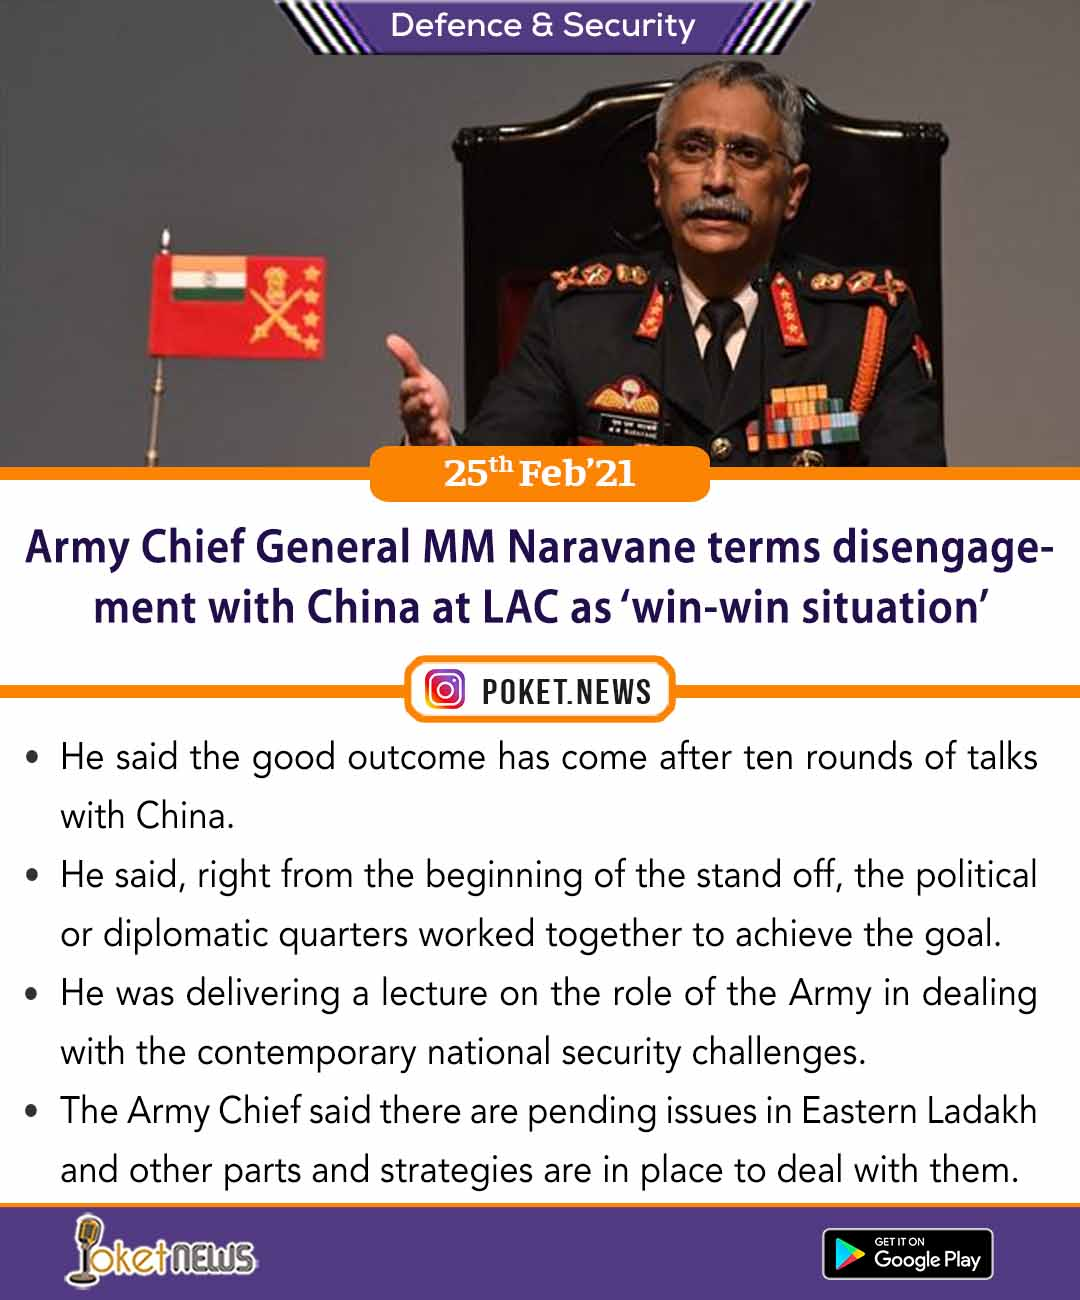 Army Chief General MM Naravane terms disengagement with China at LAC as 'win-win situation'